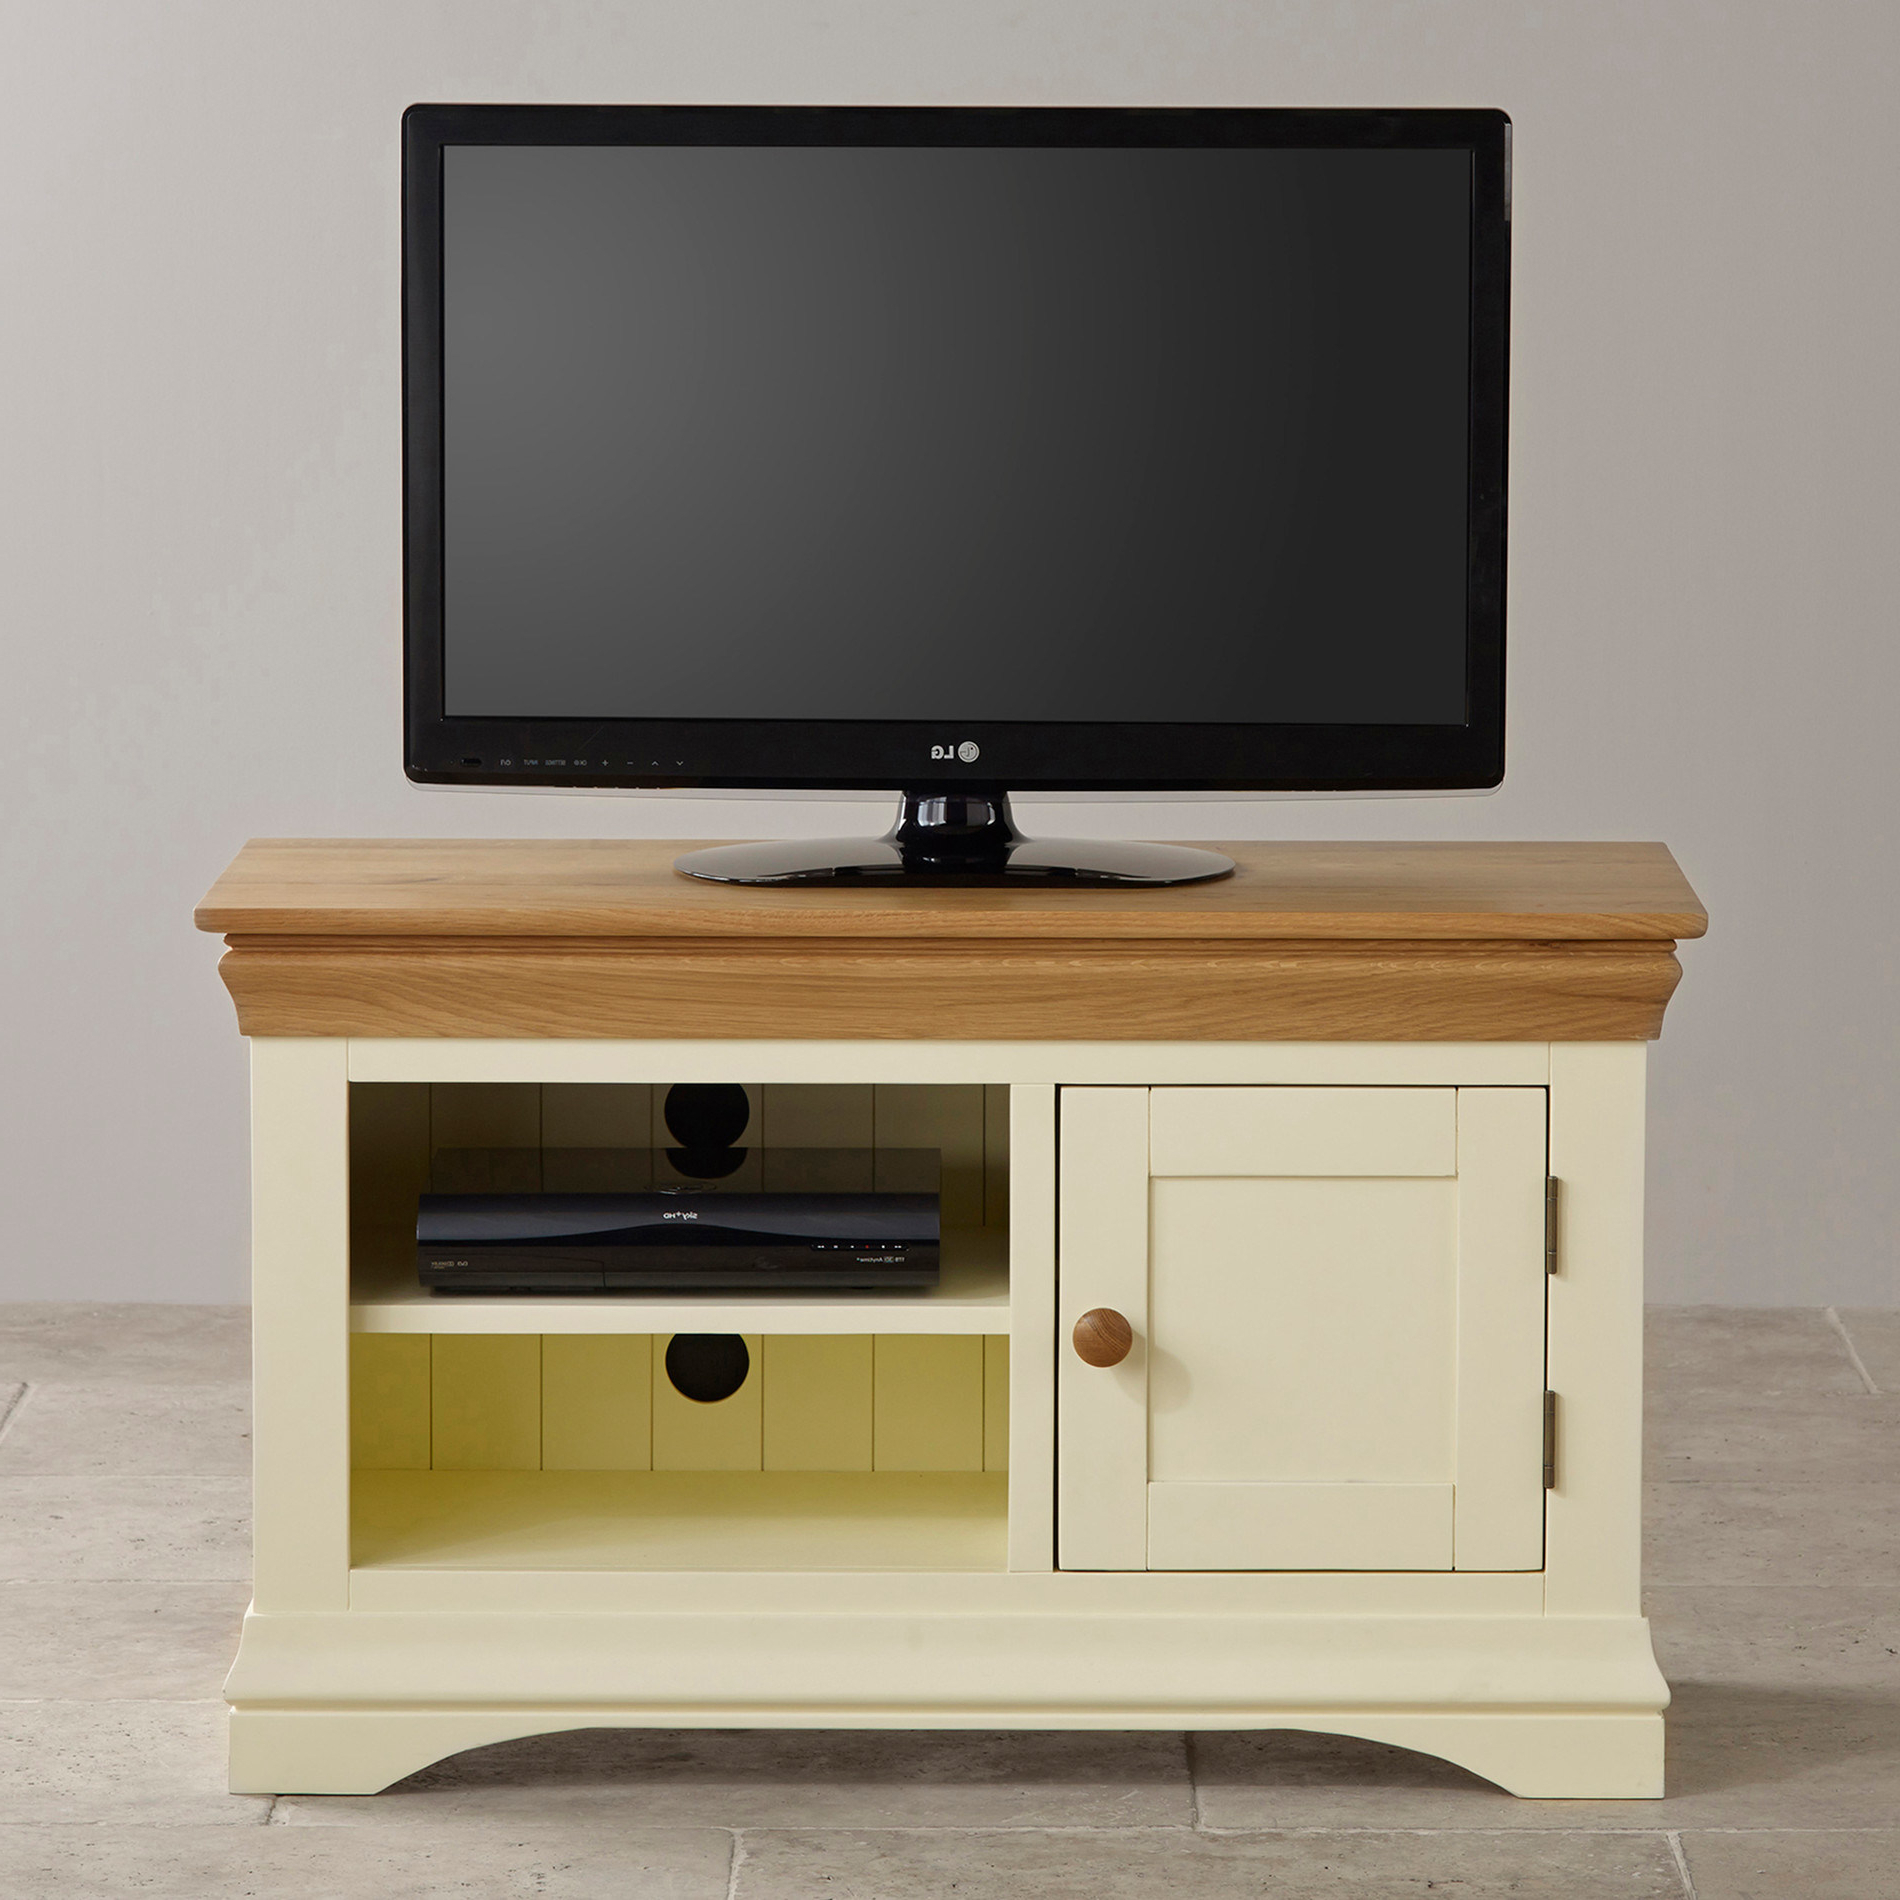 China Painted White Oak Solid Wood Small Screen Tv Stand Cabinet In Popular Painted Tv Stands (Gallery 13 of 20)